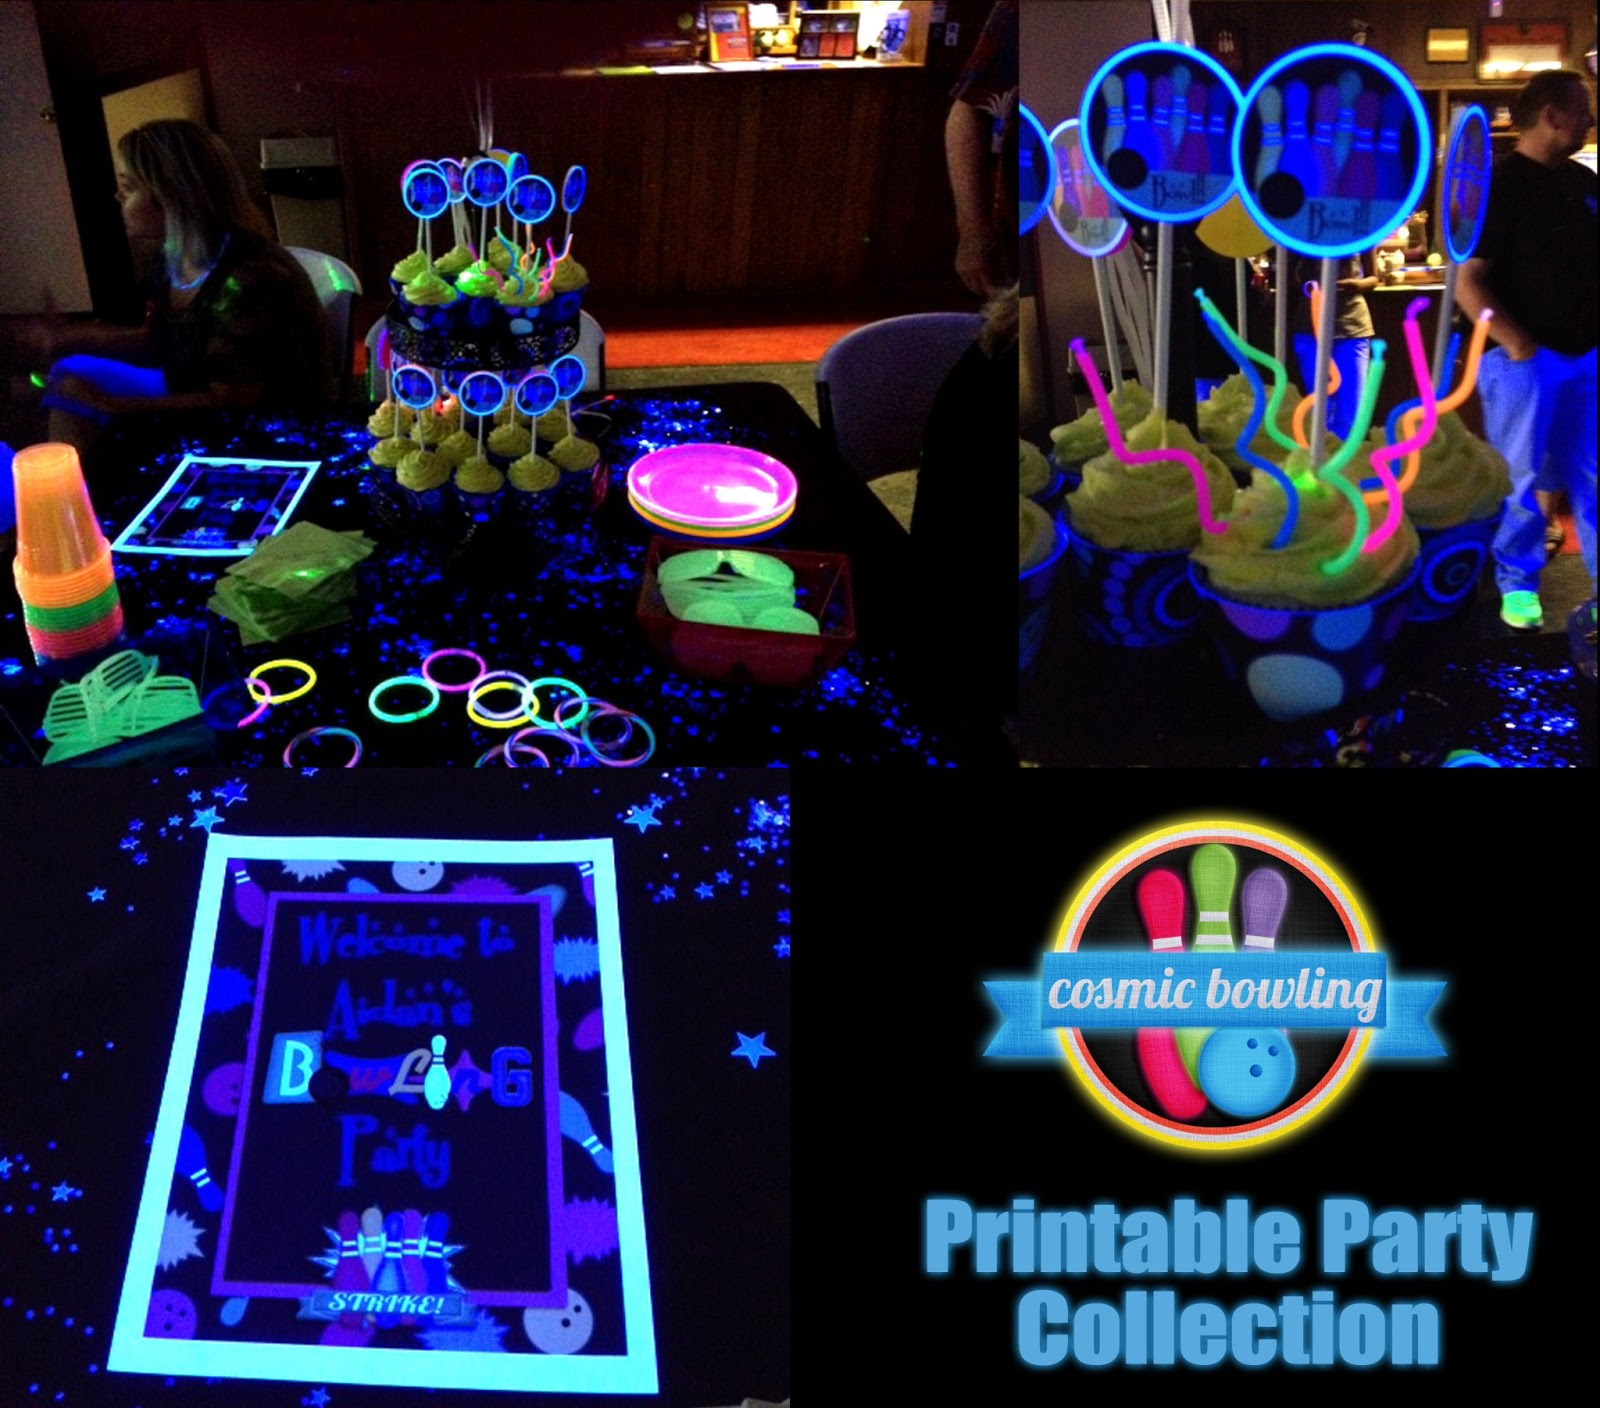 printable glow in the dark party invitations with awesome invitations layout - Black Light Party Invitations